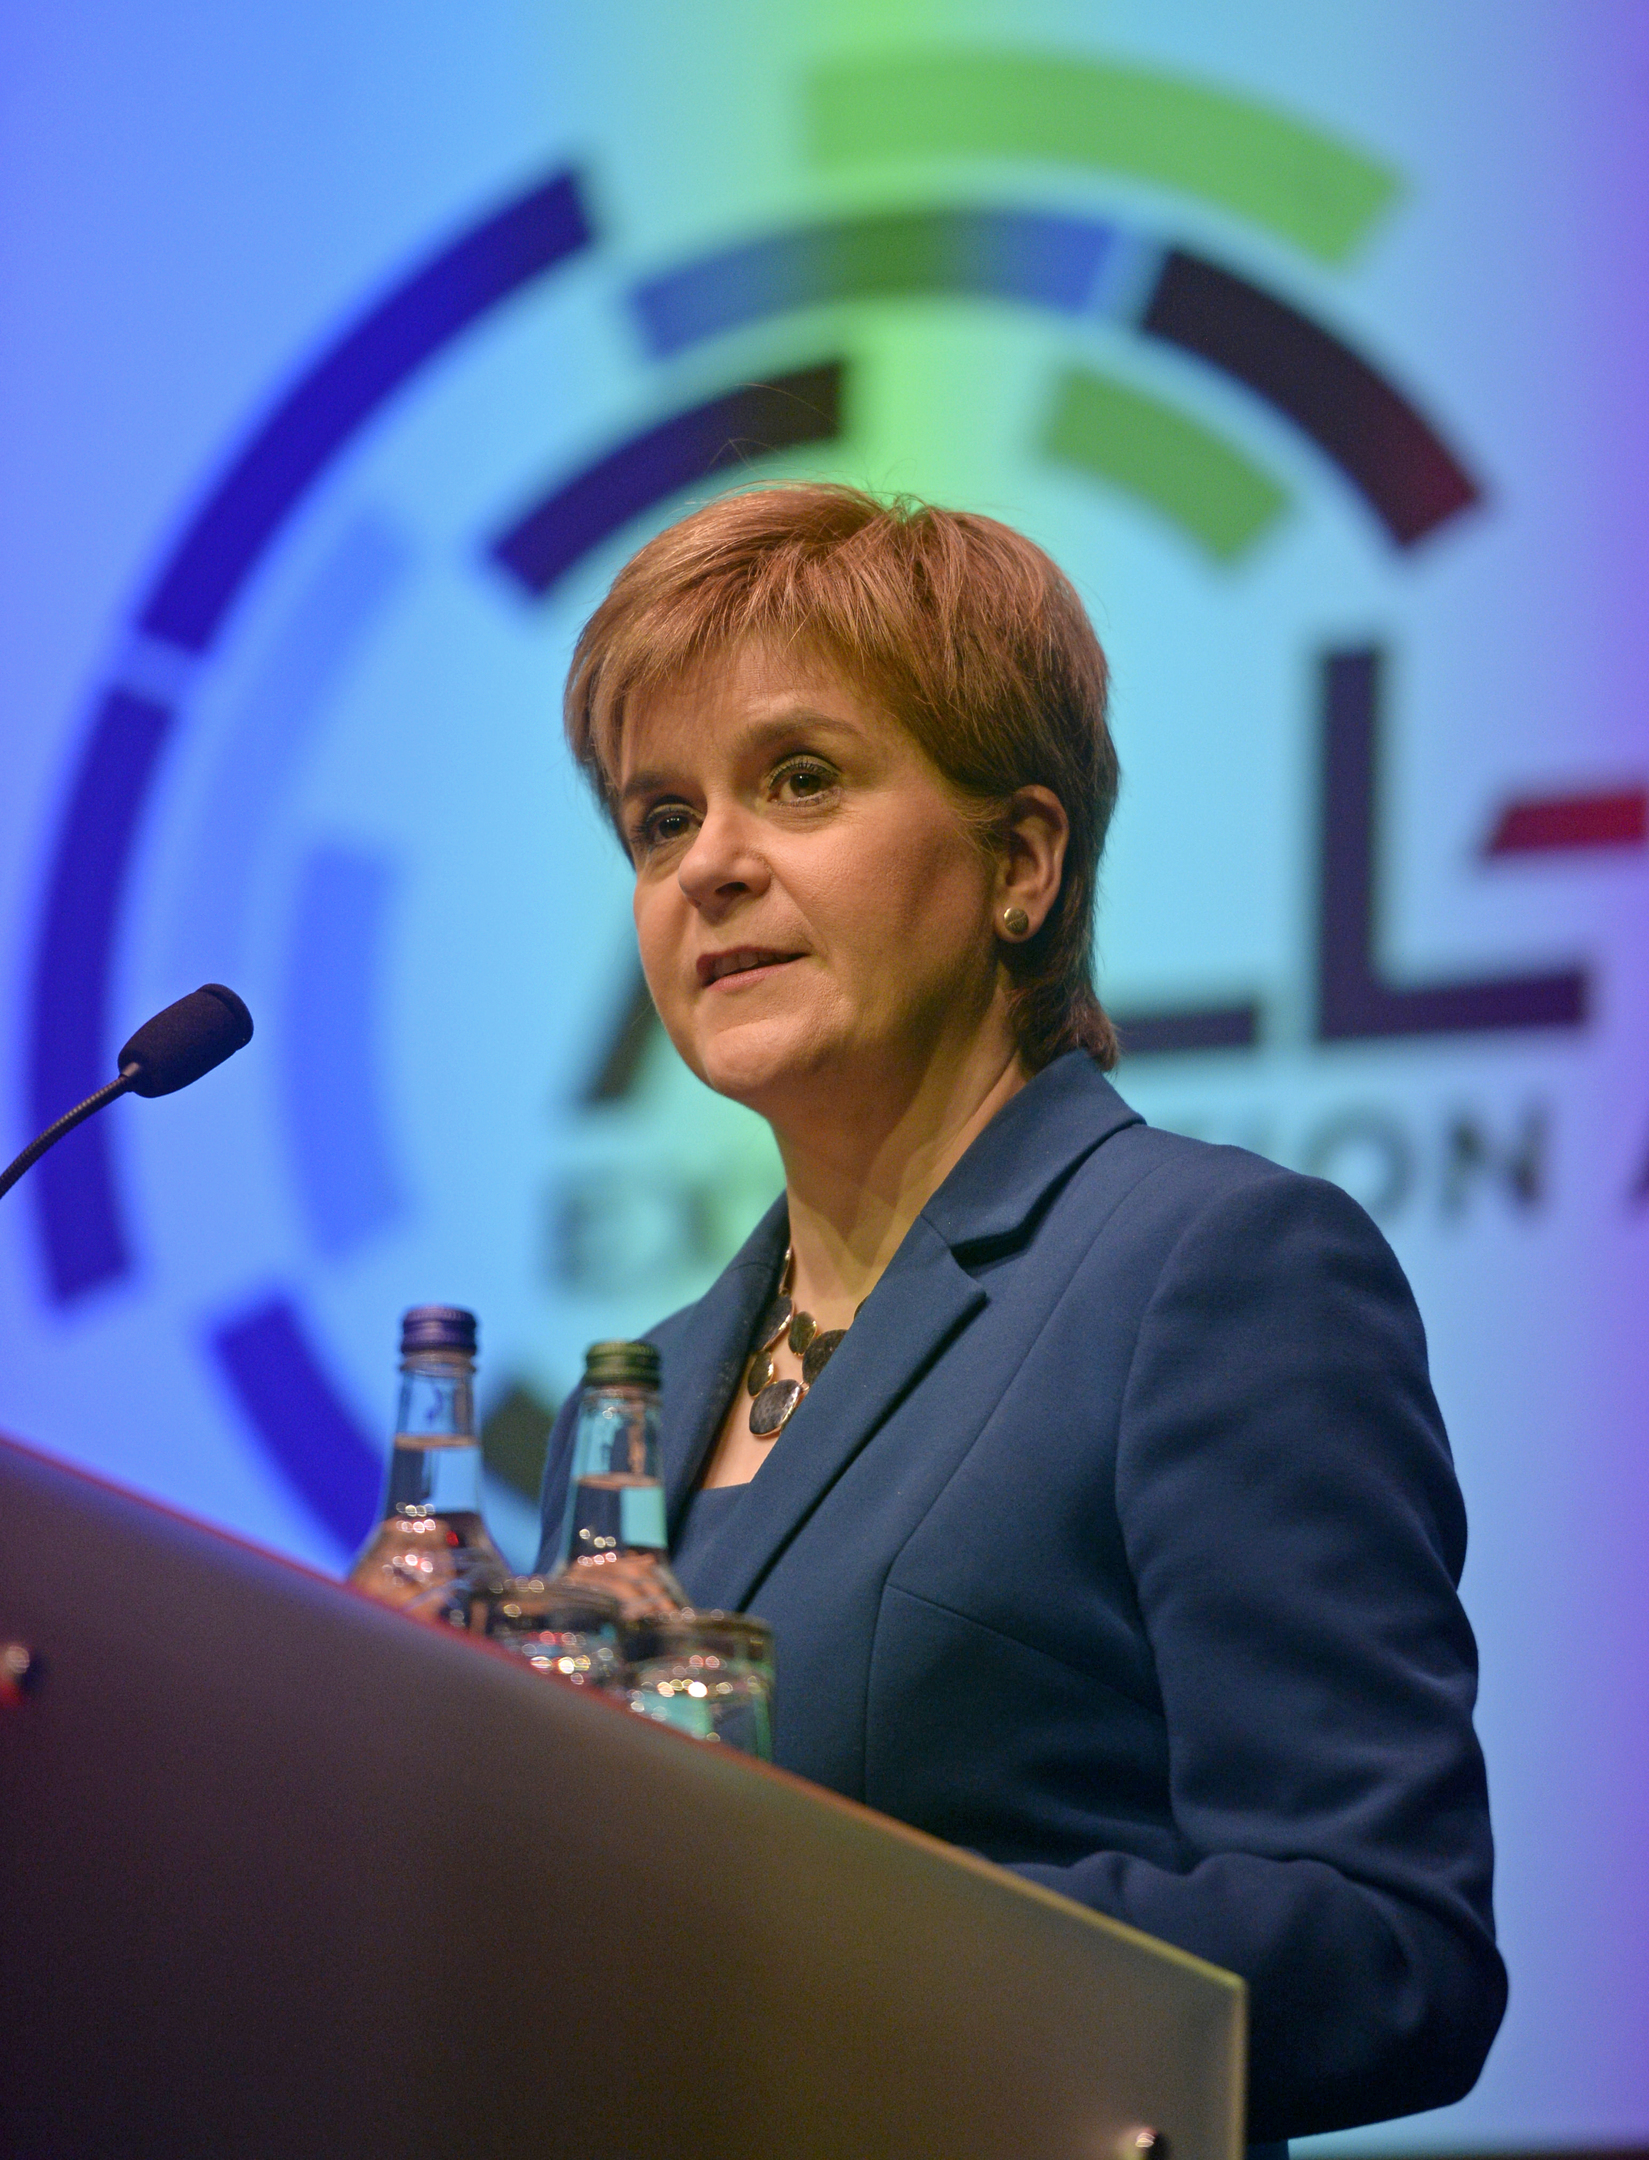 Scotland's First Minister Nicola Sturgeon at the All Energy Exhibition Conference at the Scottish Event Campus in Glasgow.  May 2 2018.